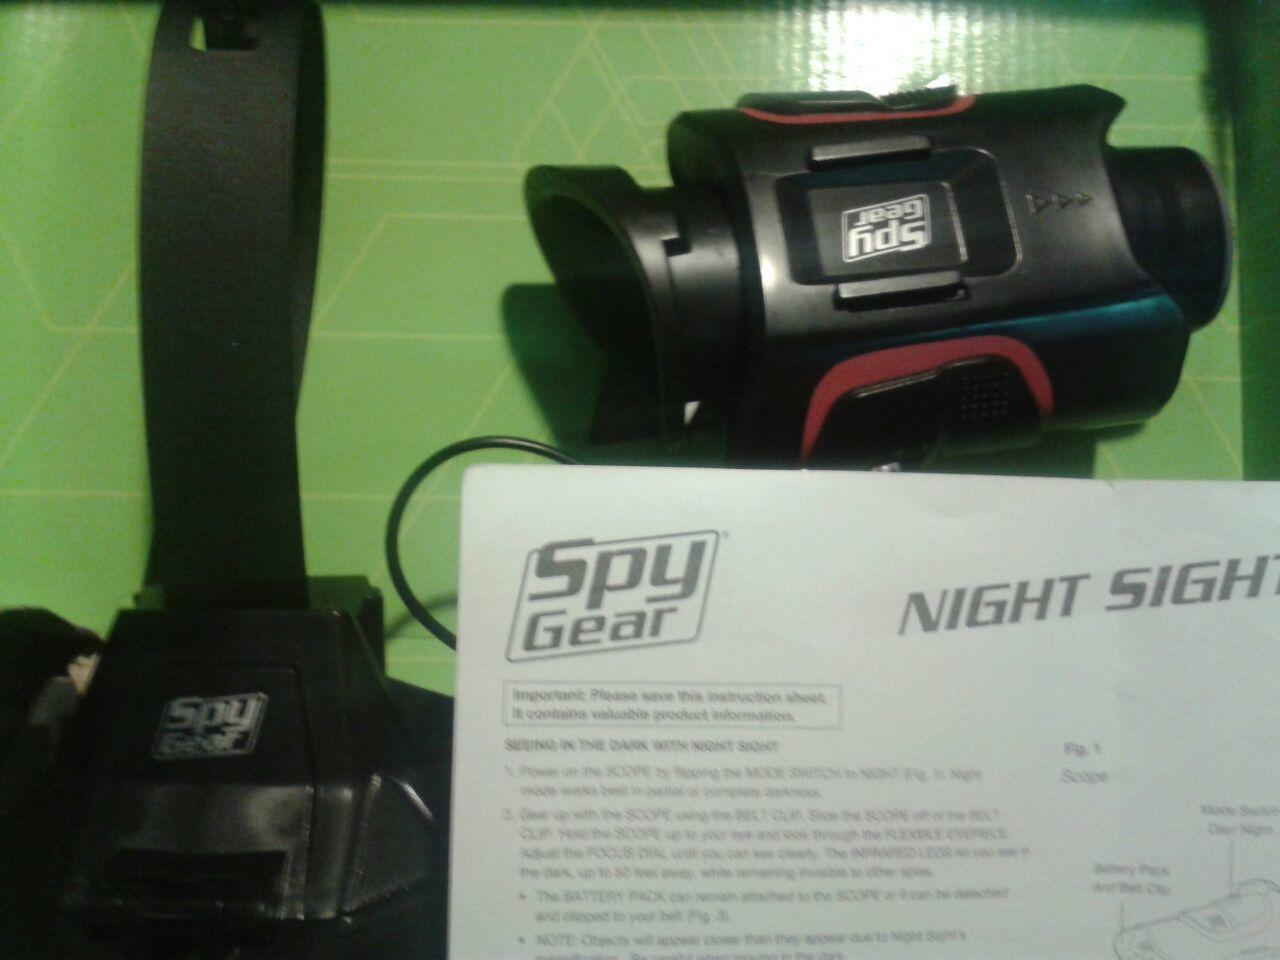 Terjual FOR SALE SPYGEAR HANDSFREE NIGHT VISION  bd50c0e255